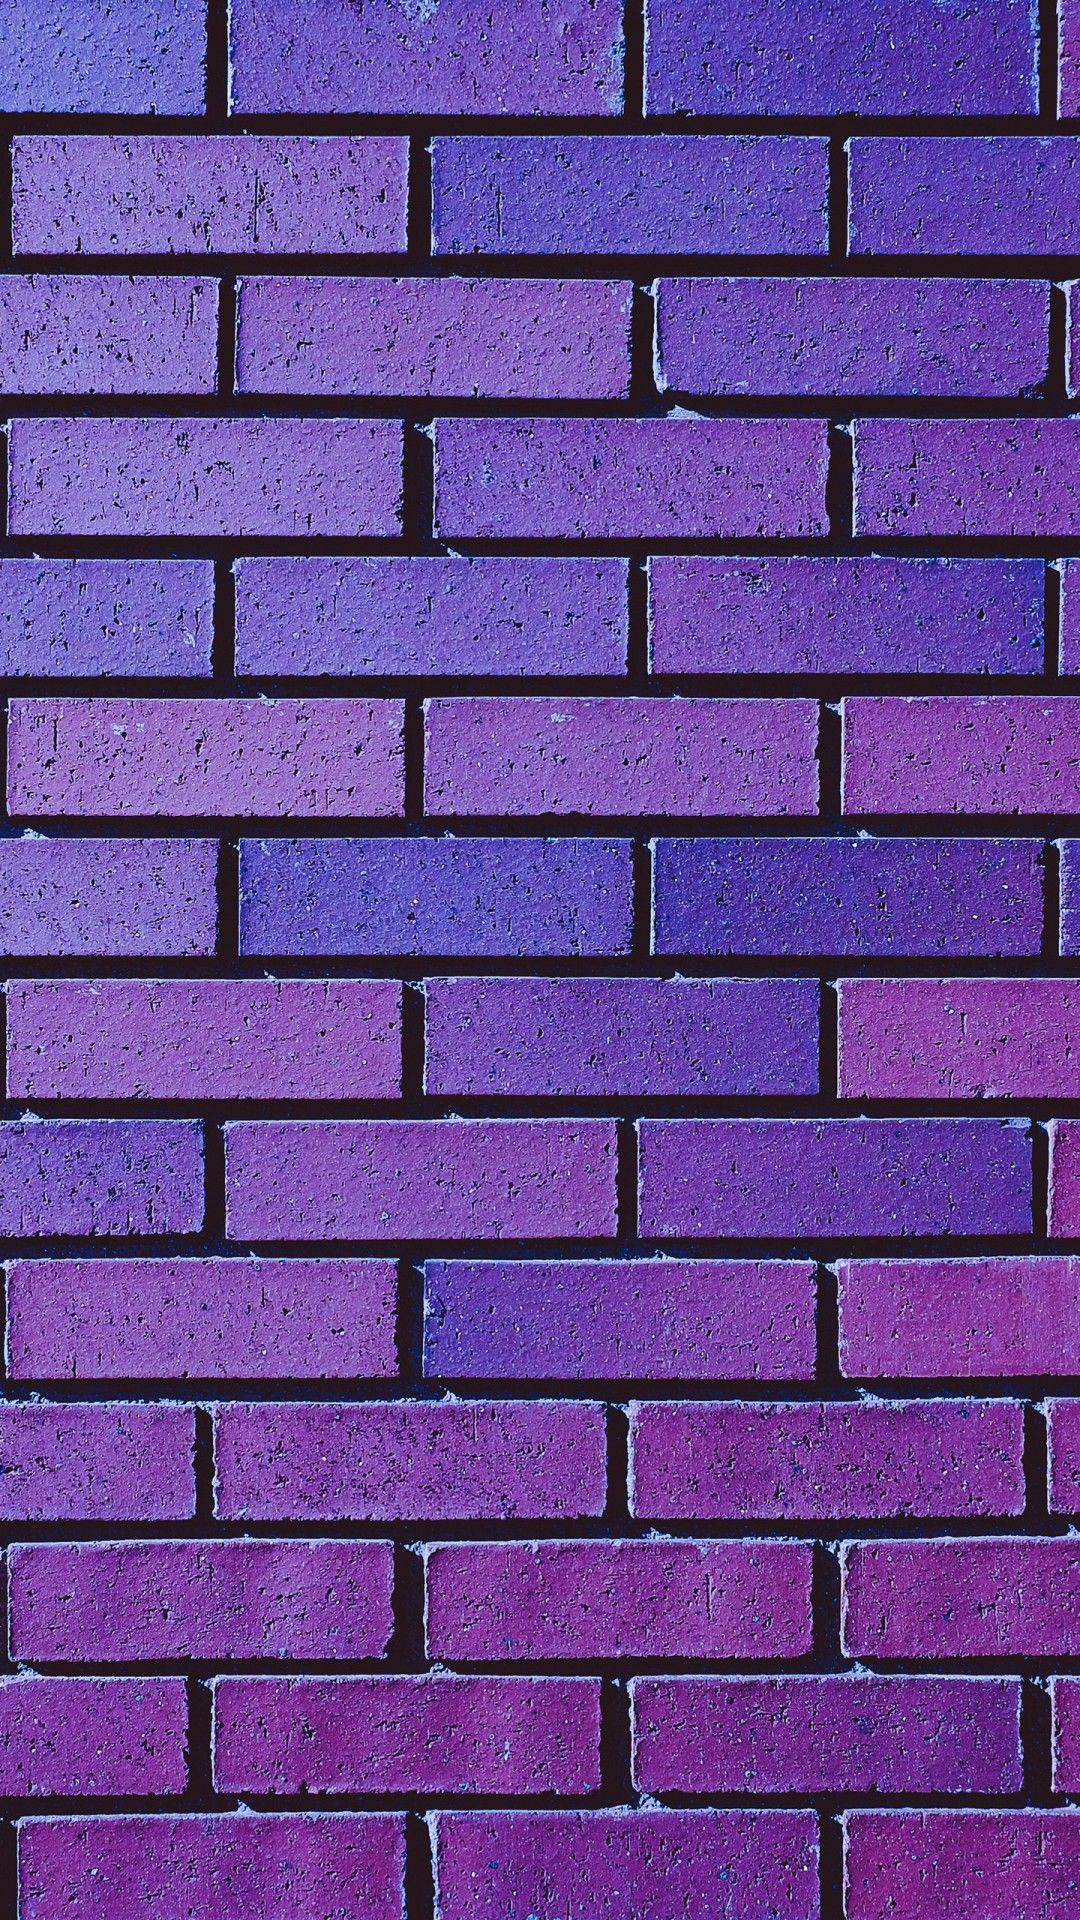 1080x1920 Purple Brick Wall Wallpapers | HD Wallpapers | ID #28649